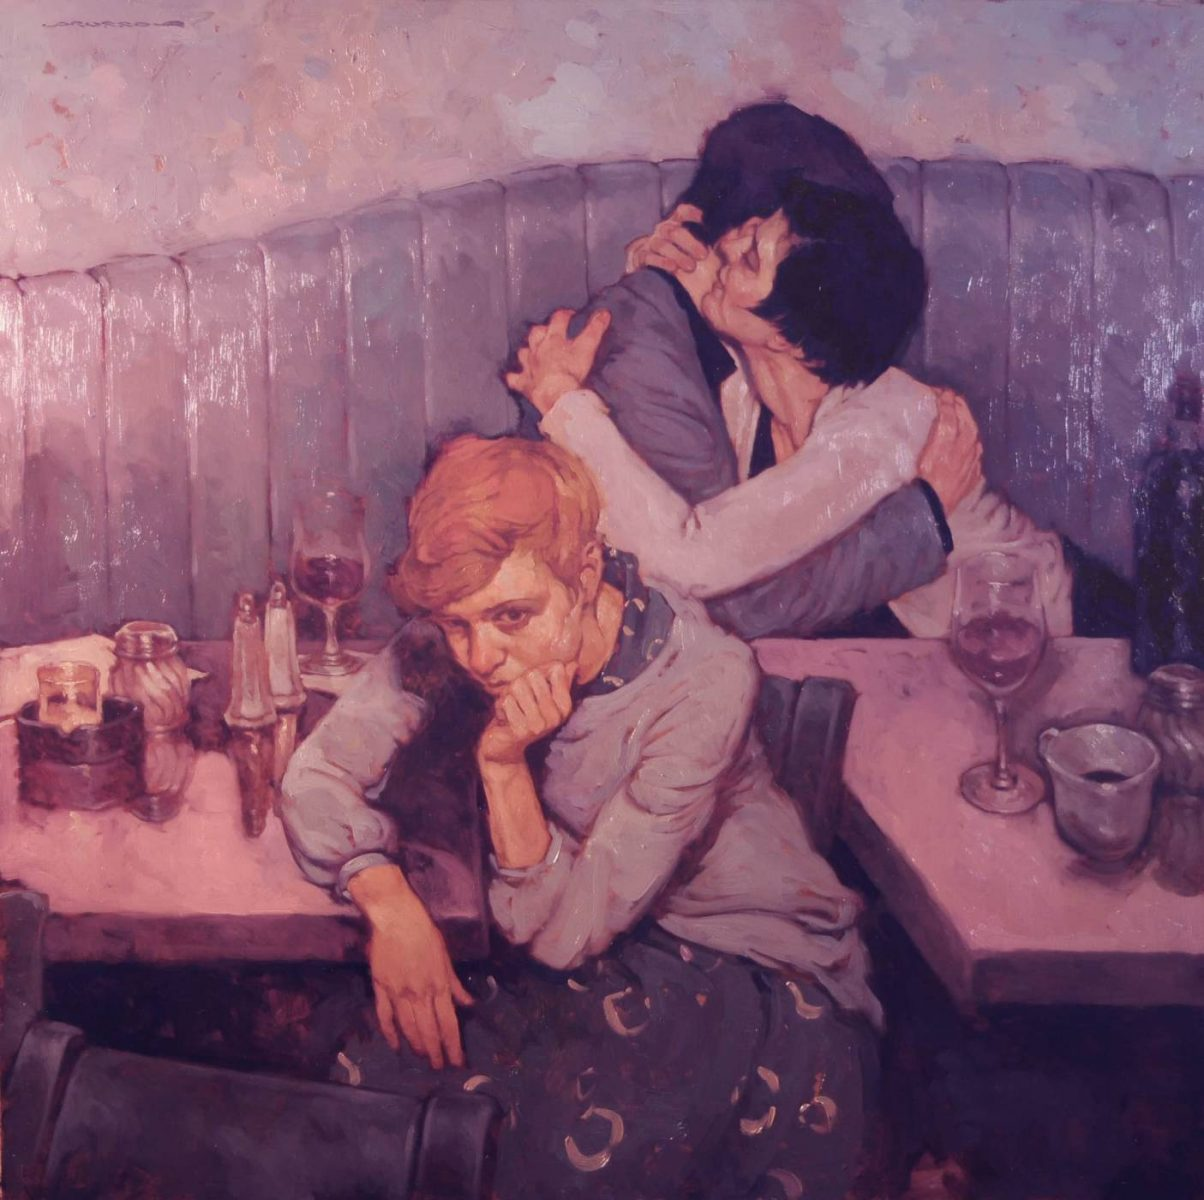 Third Wheel by Joseph Lorusso